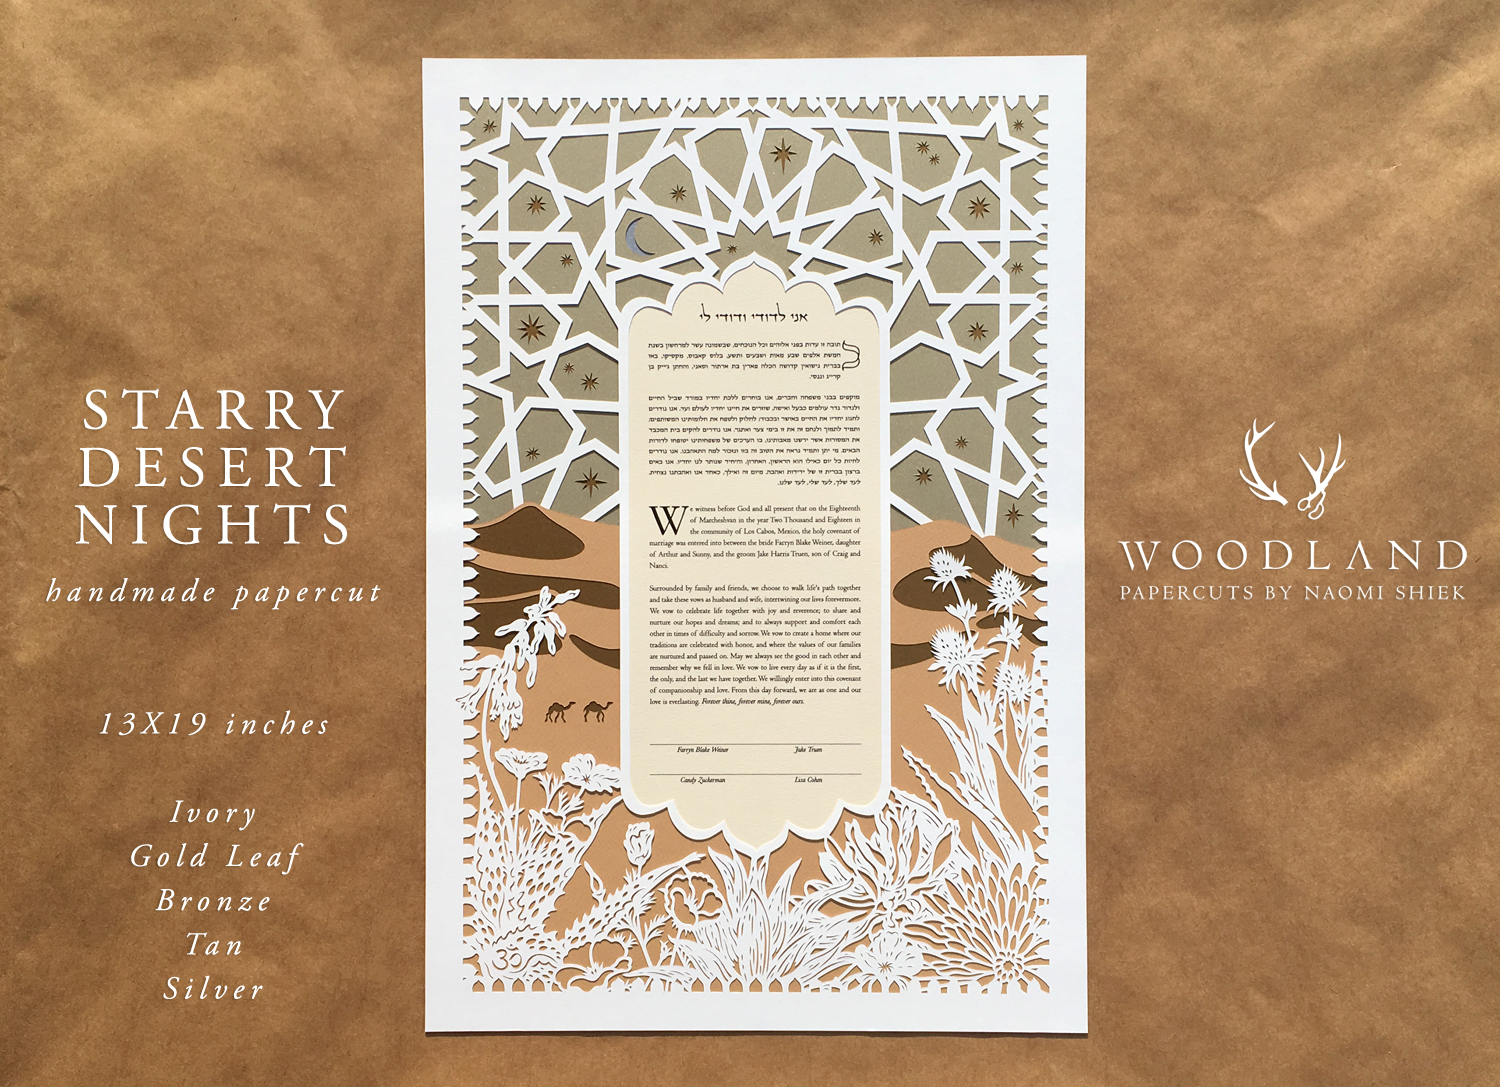 Handmade papercut for a Jewish wedding celebration. The wedding vows are framed by the original papercut design of Arabian Nights.